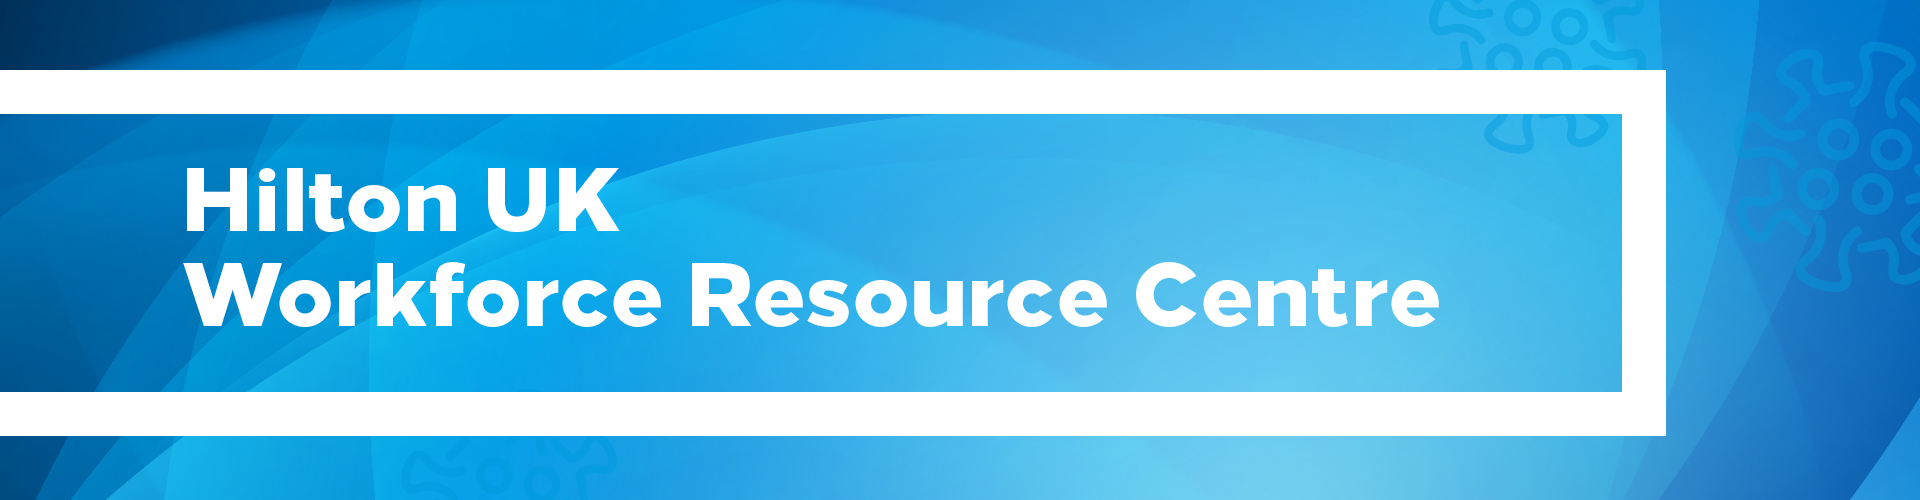 Hilton UK Workforce Resource Center